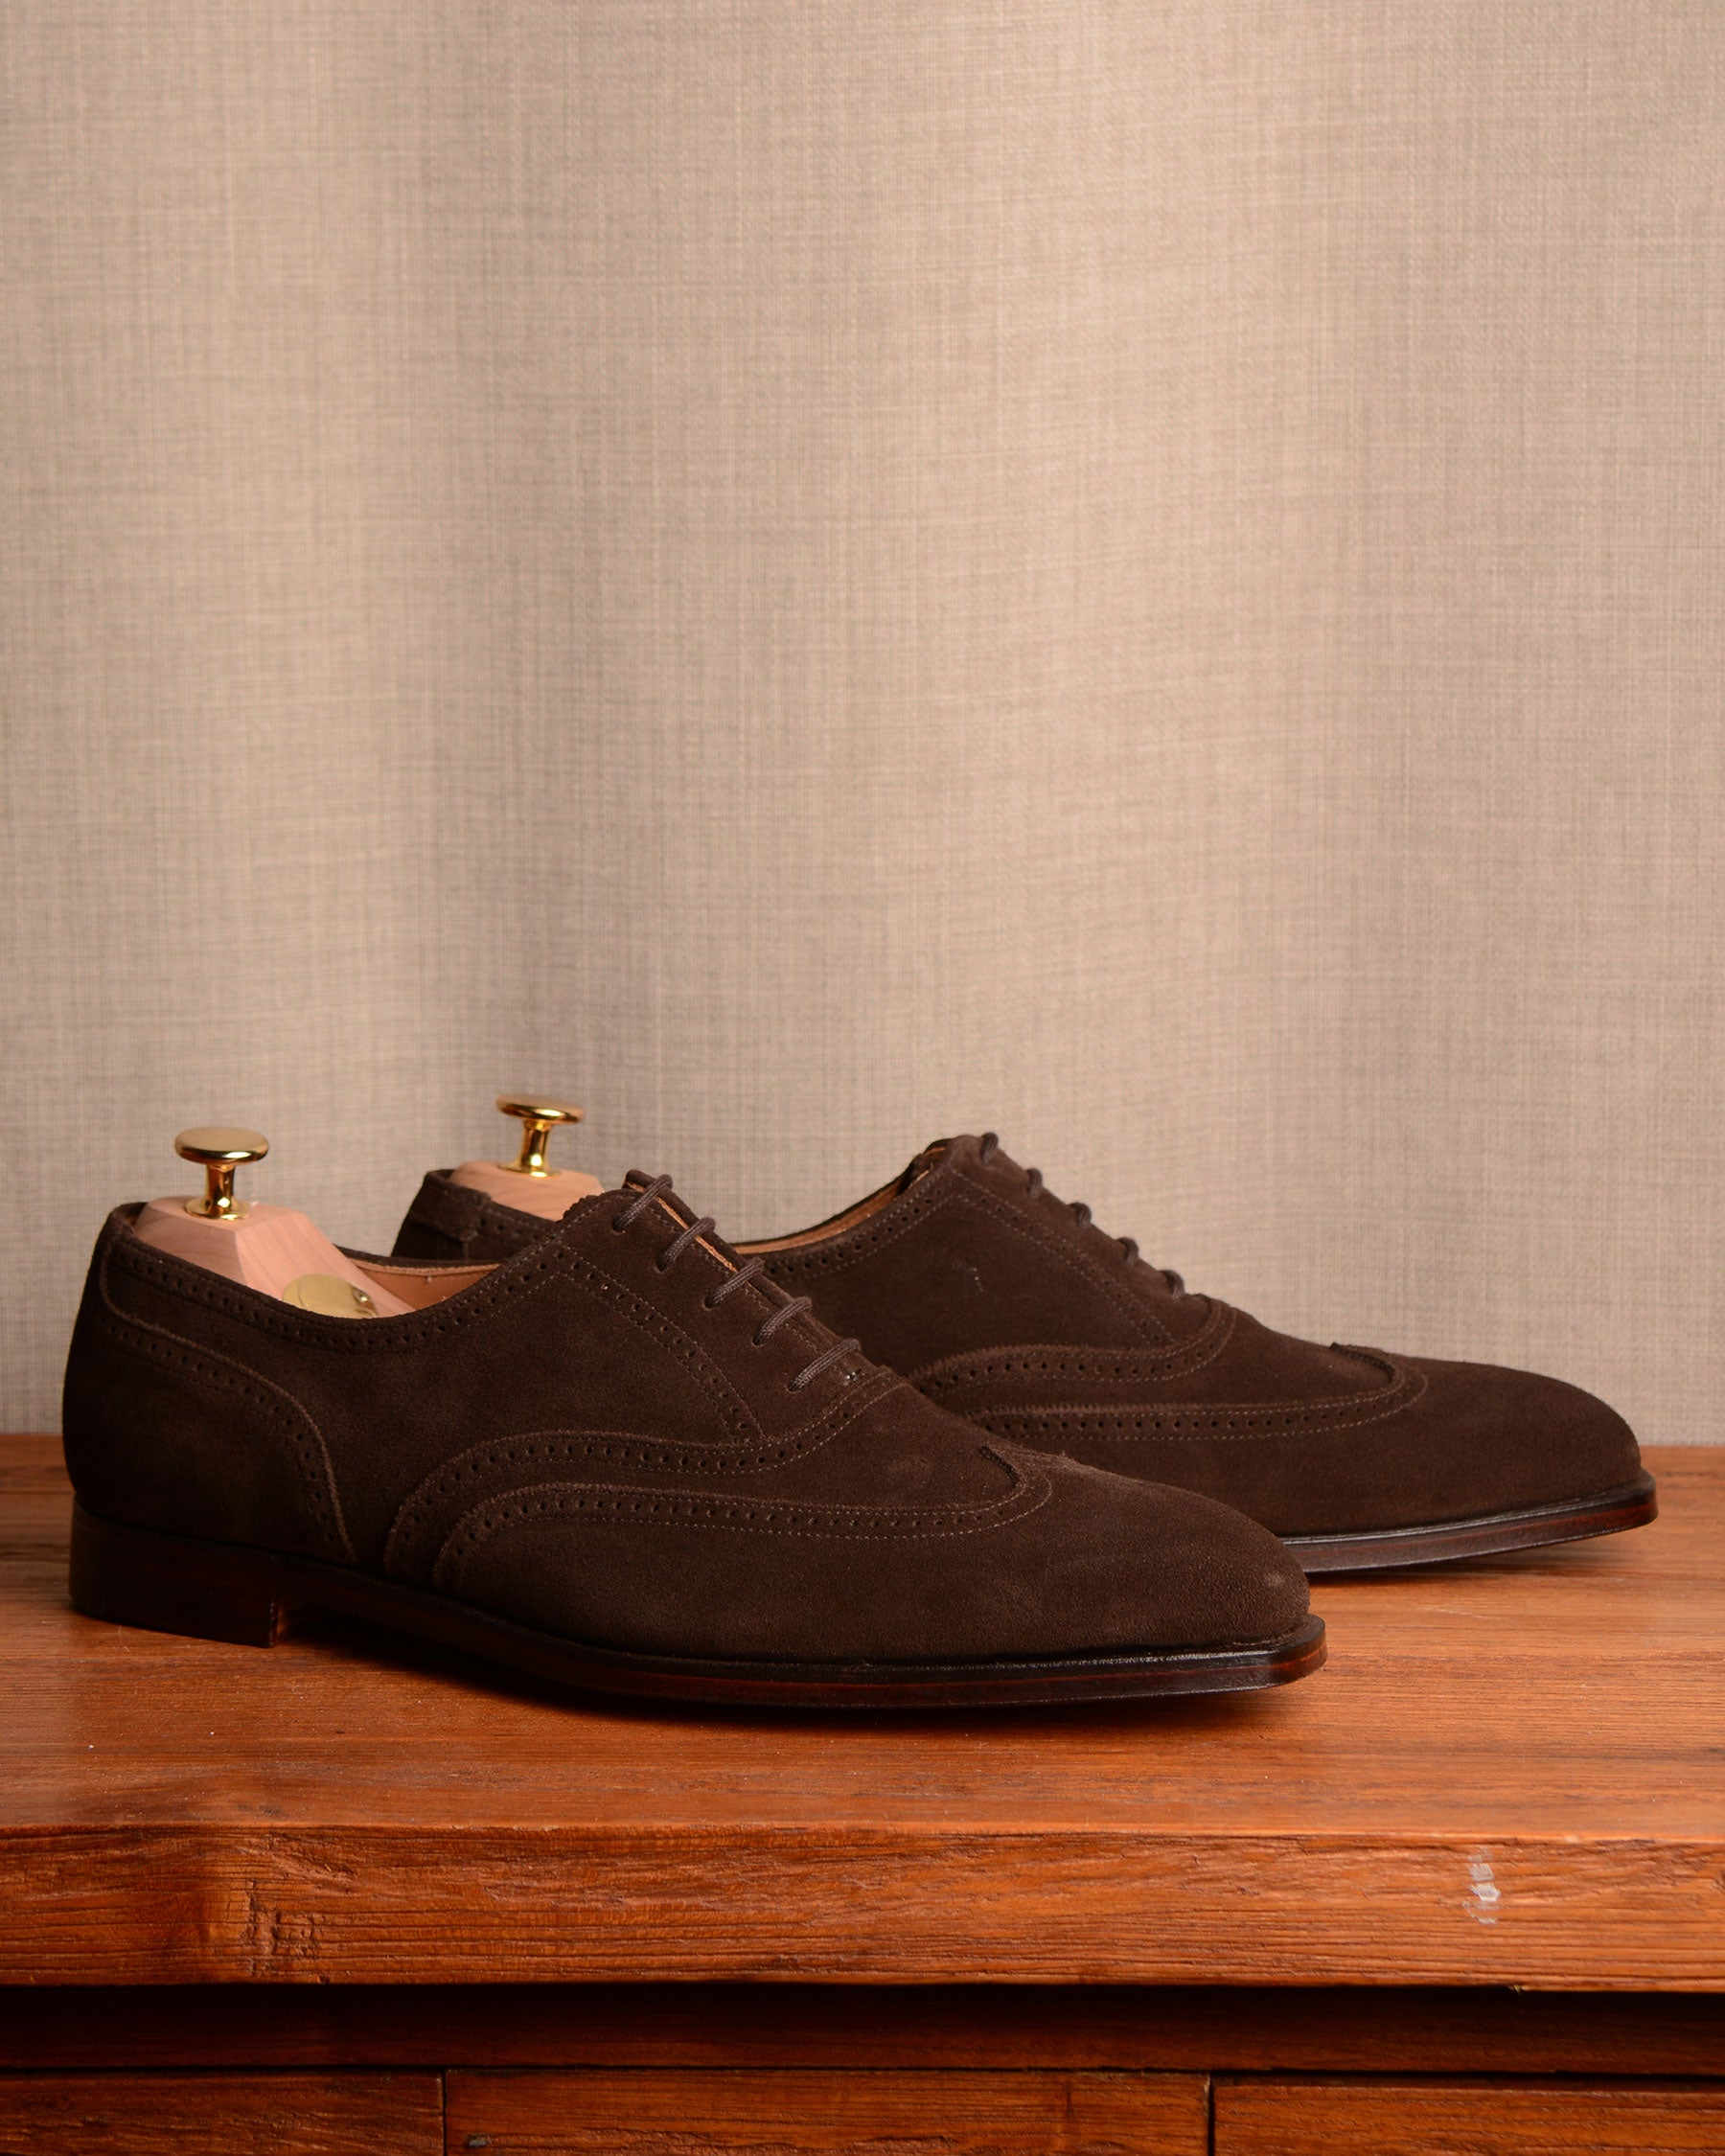 Crockett & Jones Drummond - Dark Brown Suede